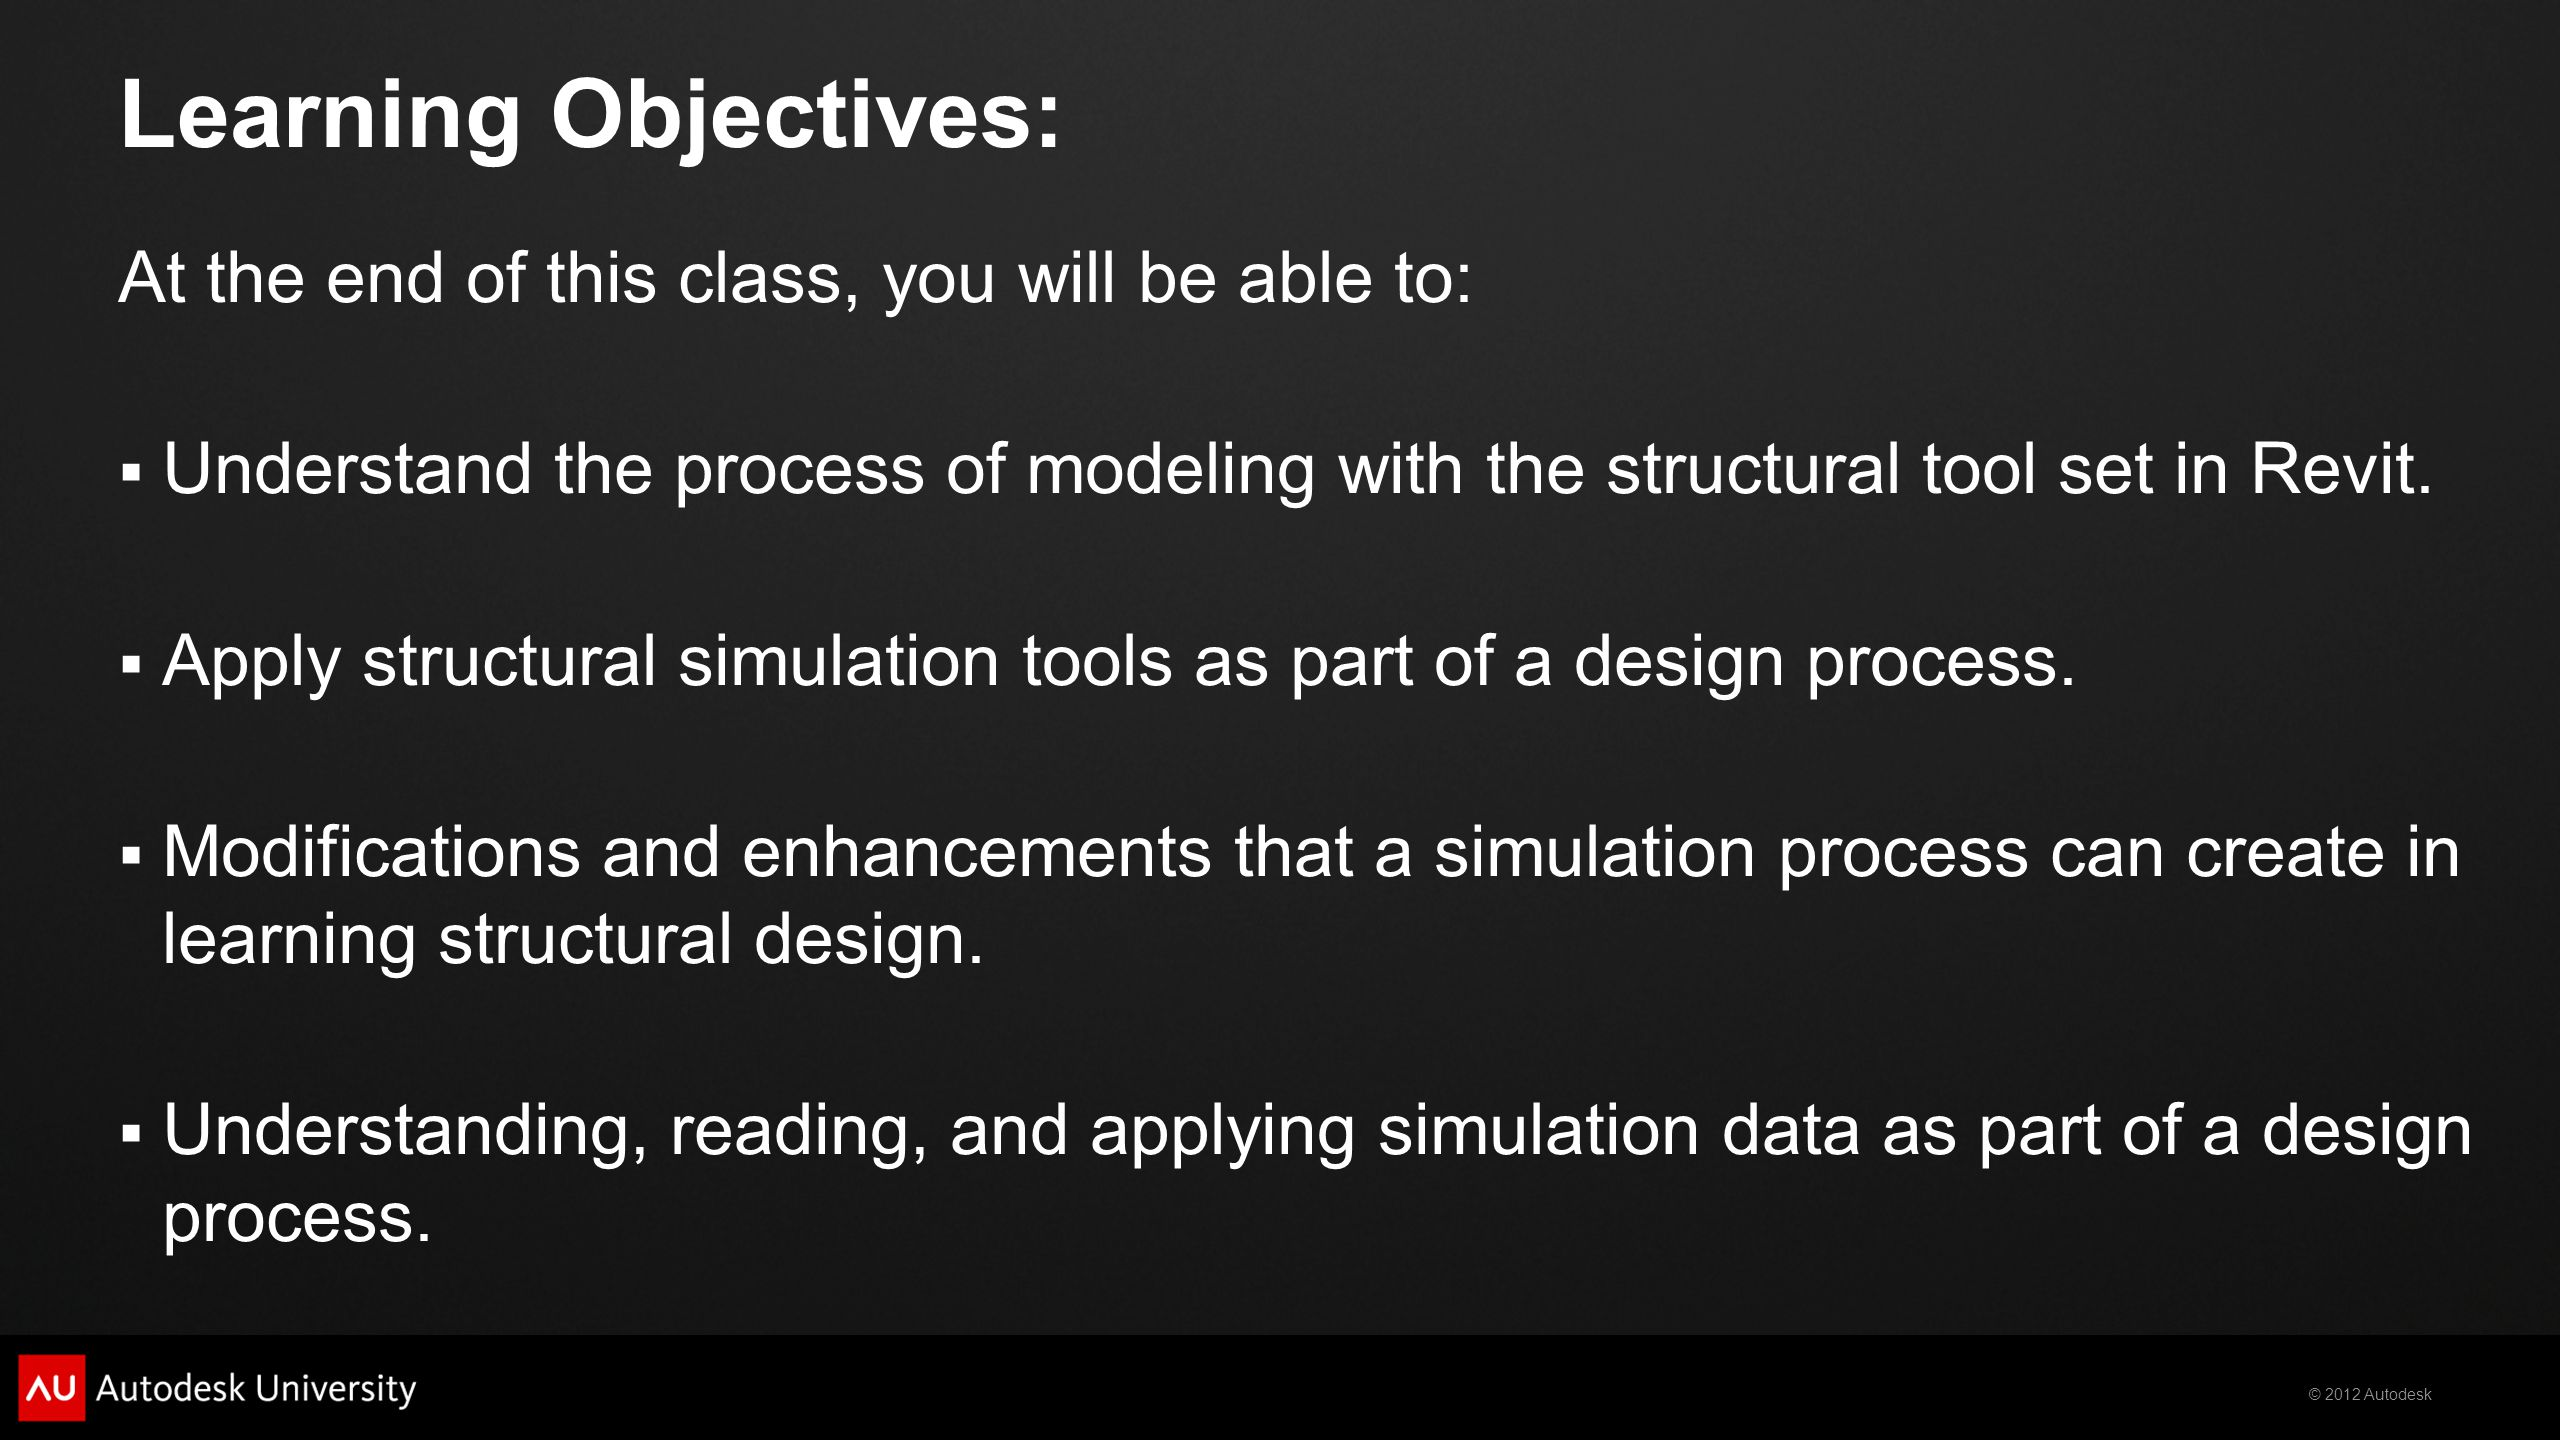 © 2012 Autodesk Learning Objectives: At the end of this class, you will be able to:  Understand the process of modeling with the structural tool set in Revit.